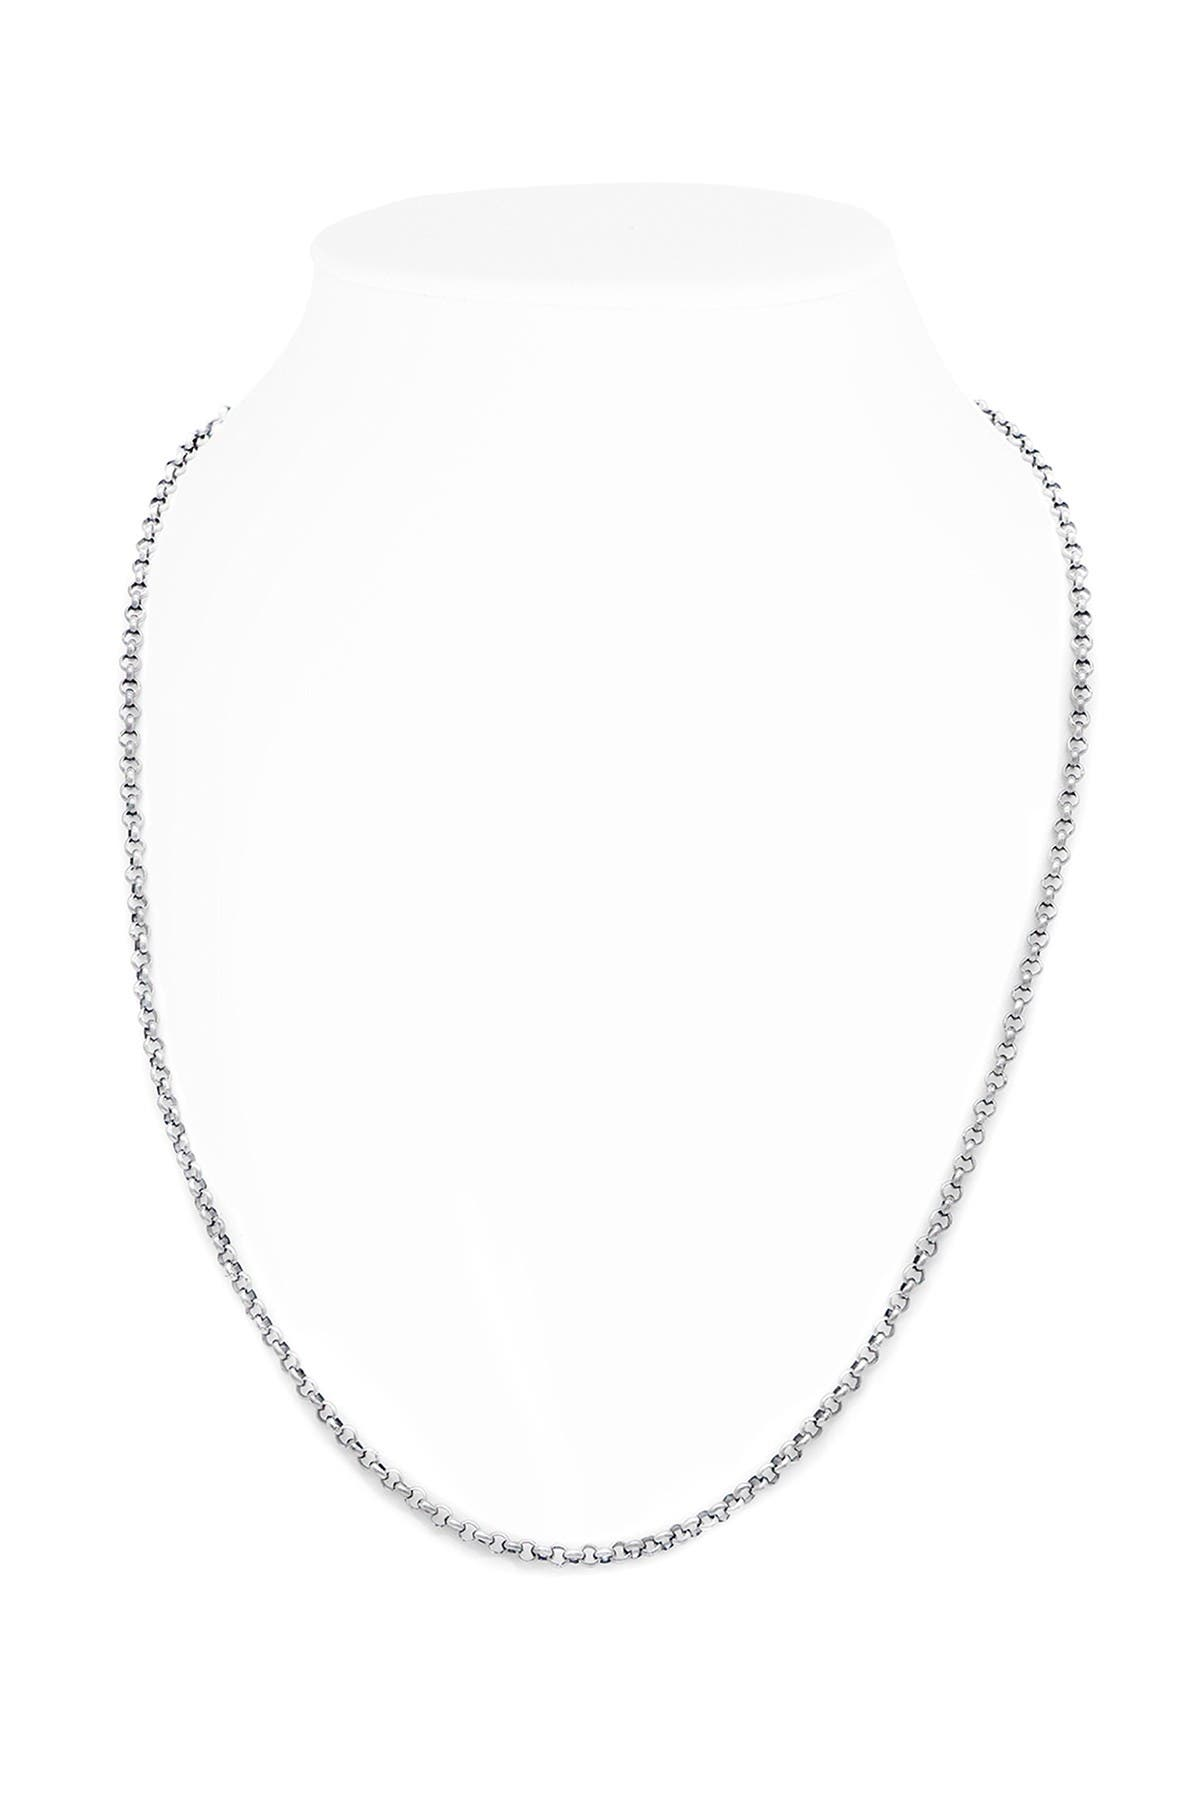 Image of DEVATA Sterling Silver Rolo Chain Necklace